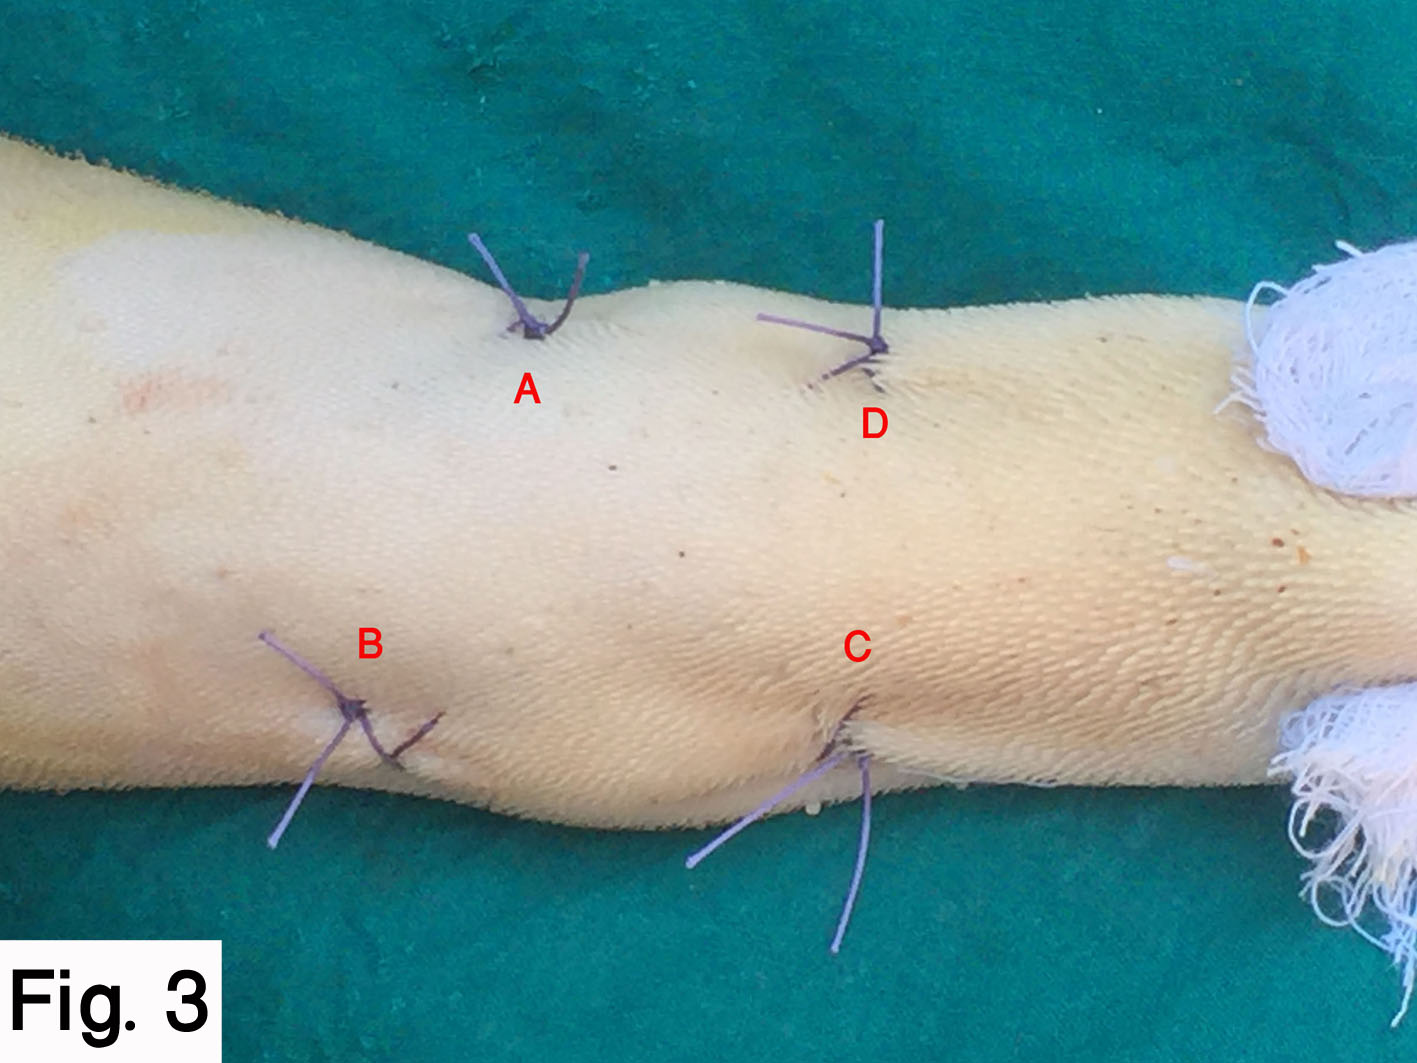 Intra-lingual suture pattern for prevention of self-suckling in cows